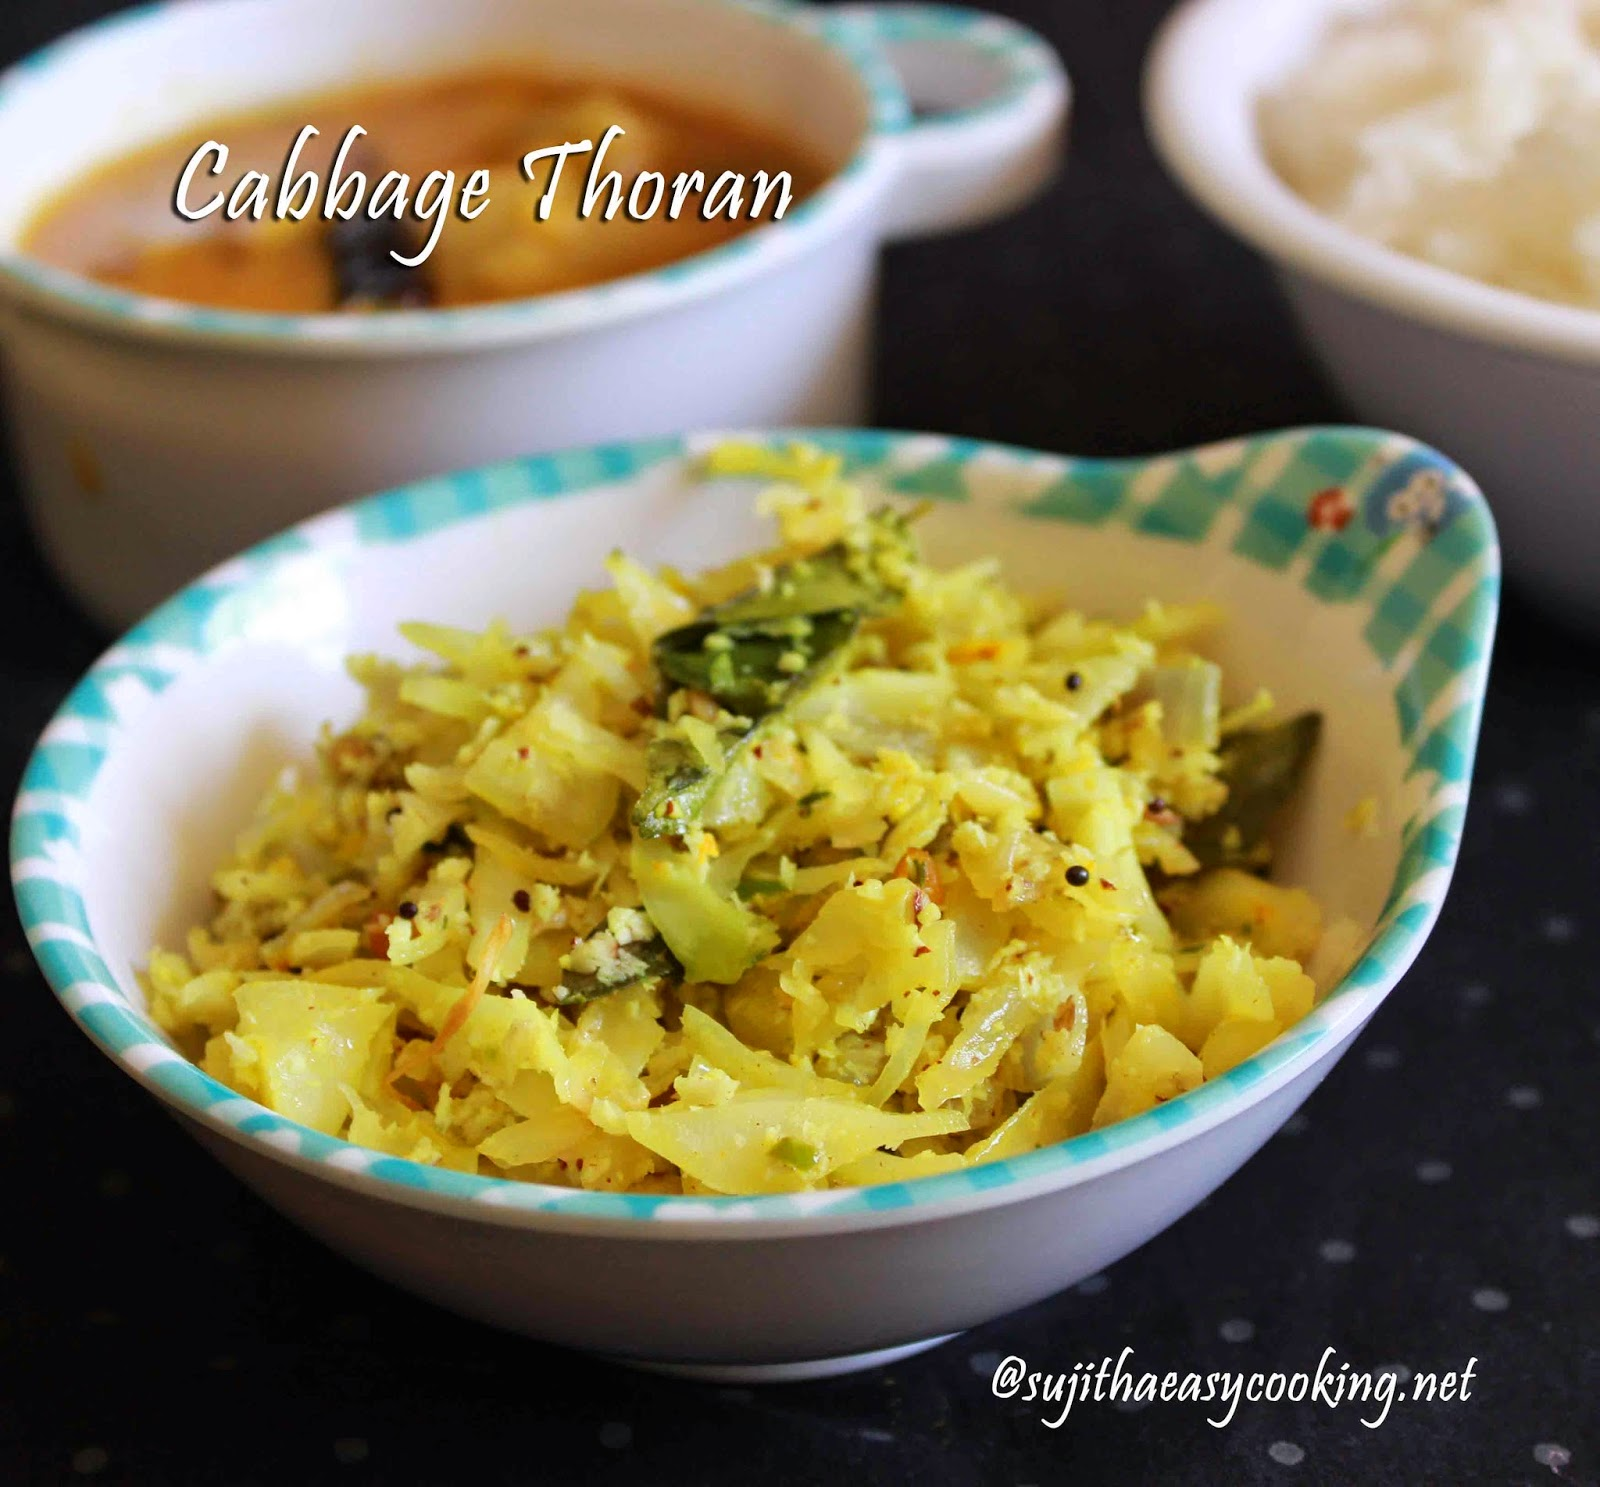 Cabbage Thoran/Cabbage Stir Fry/ Cabbage Poriyal